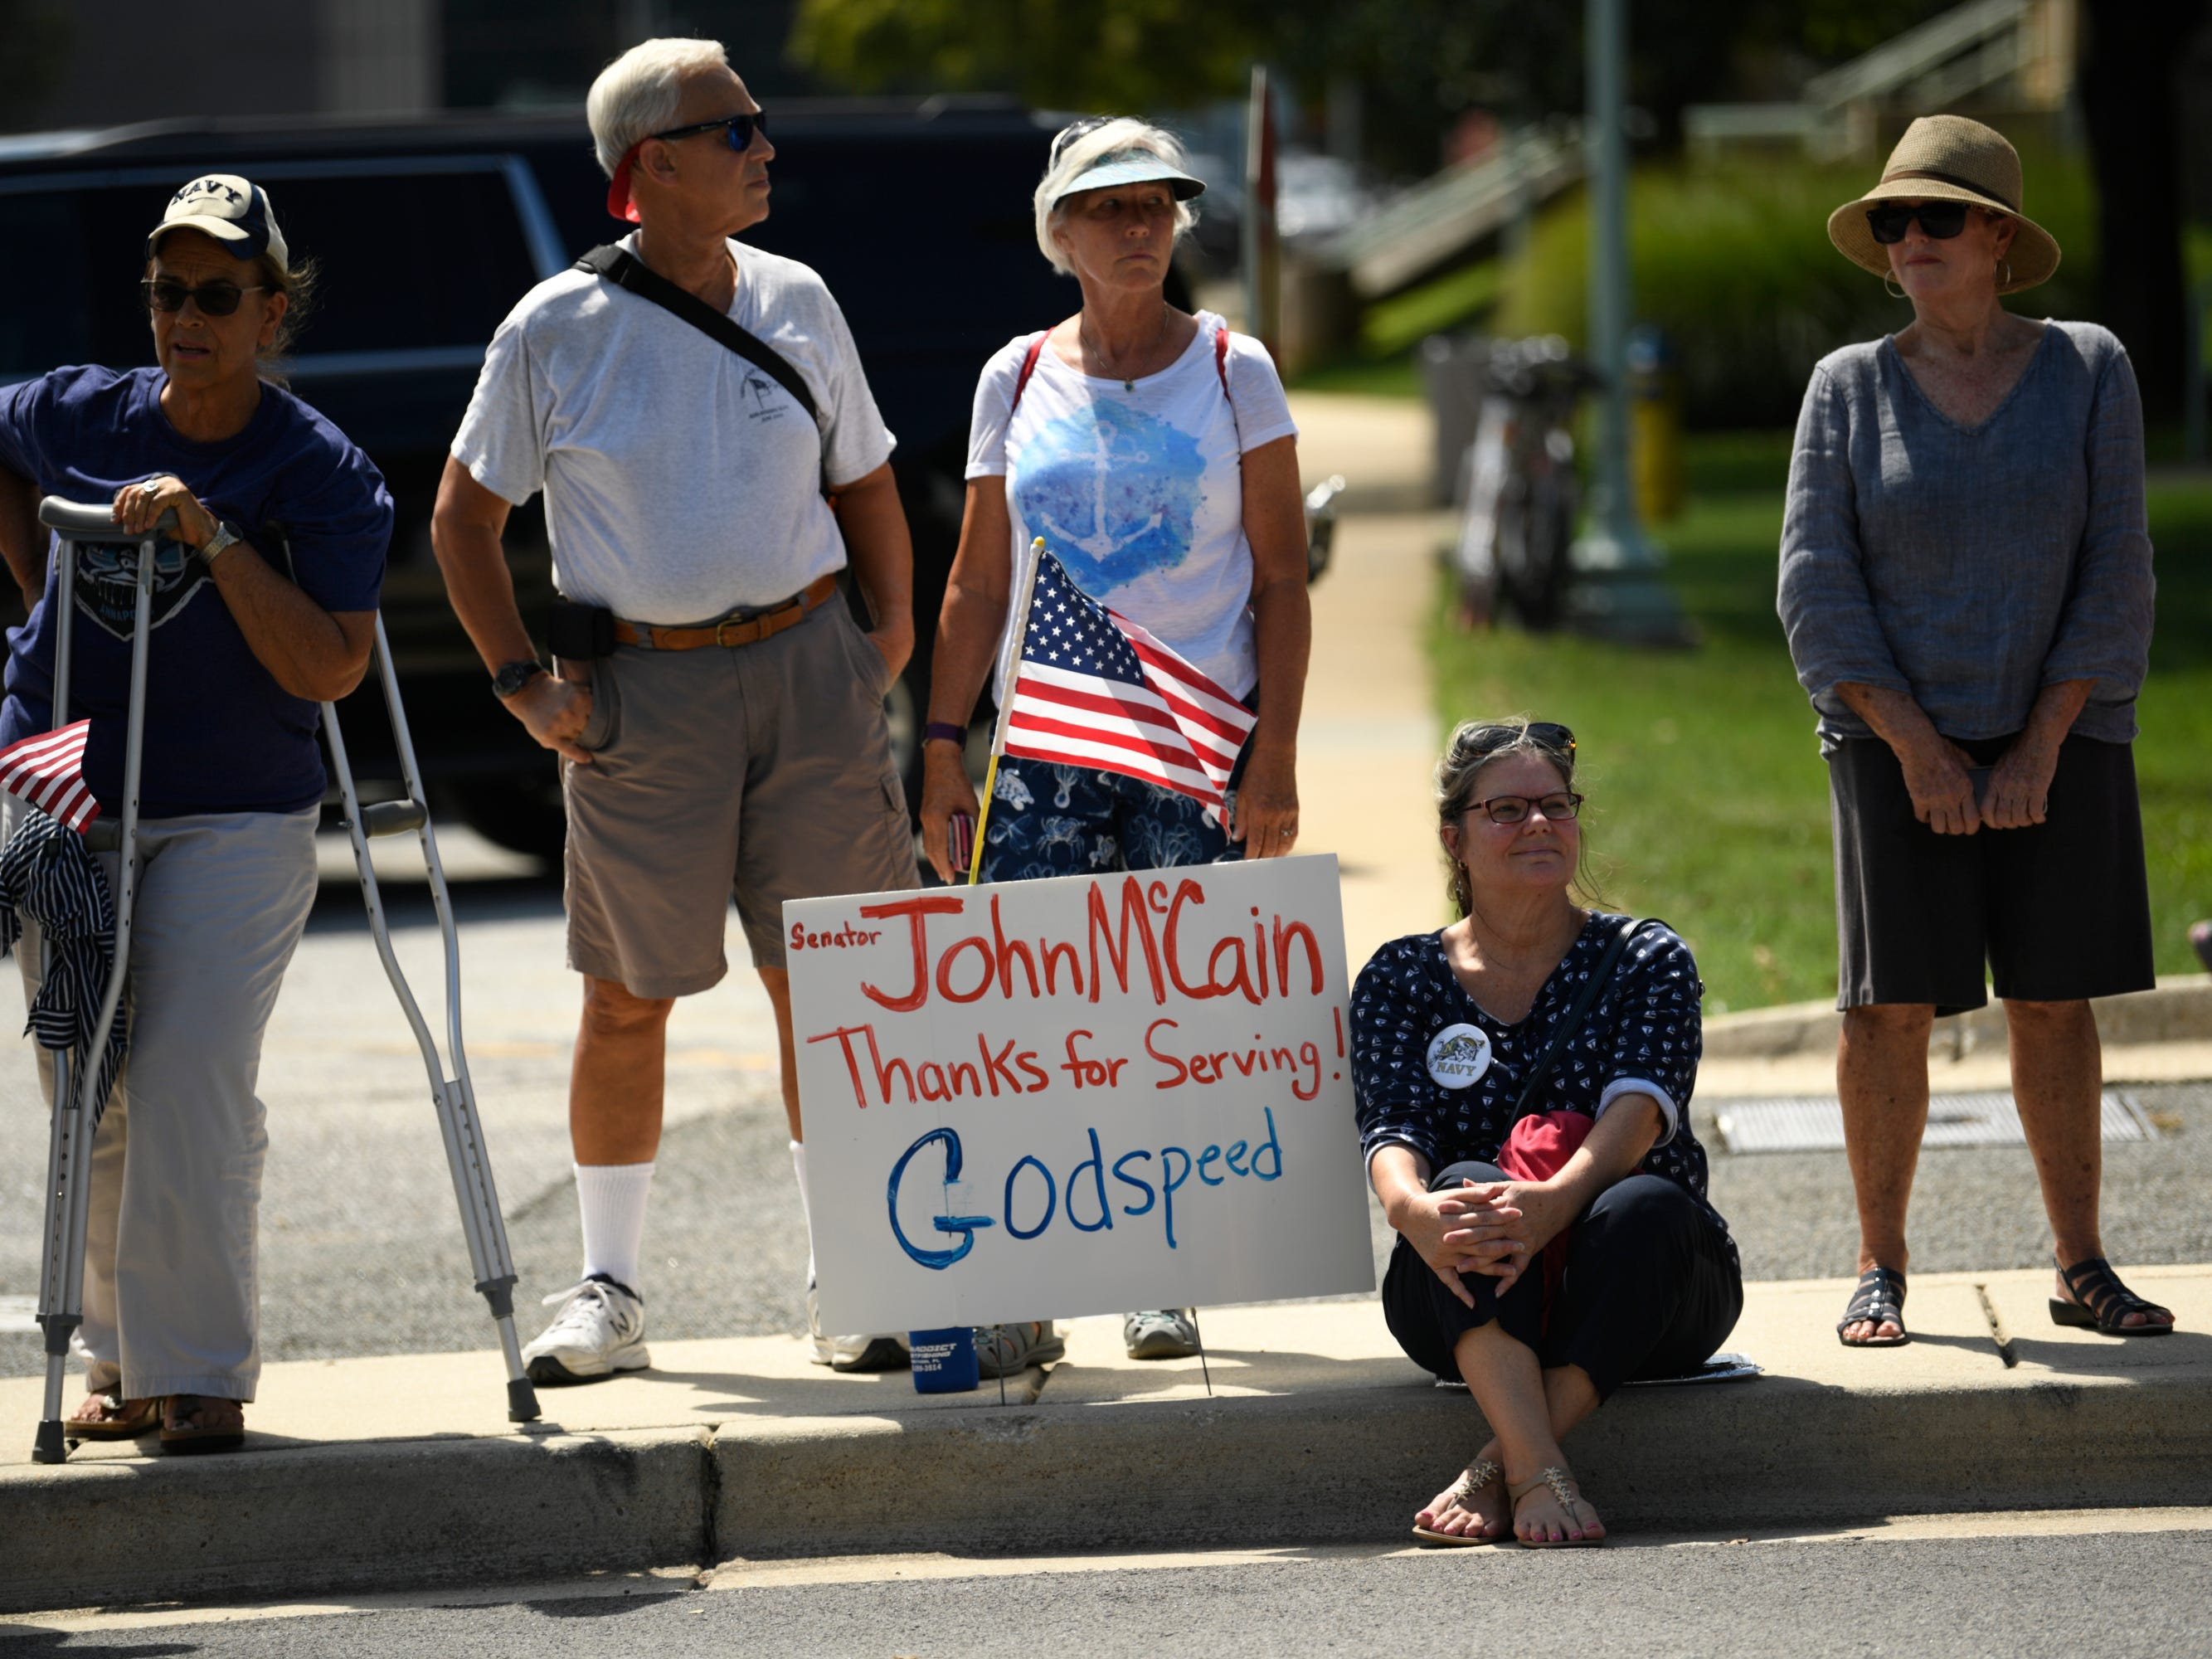 People gather to watch the passing of John McCain's motorcade on his way to be laid to rest at the U.S. Naval Academy in Annapolis, Maryland.